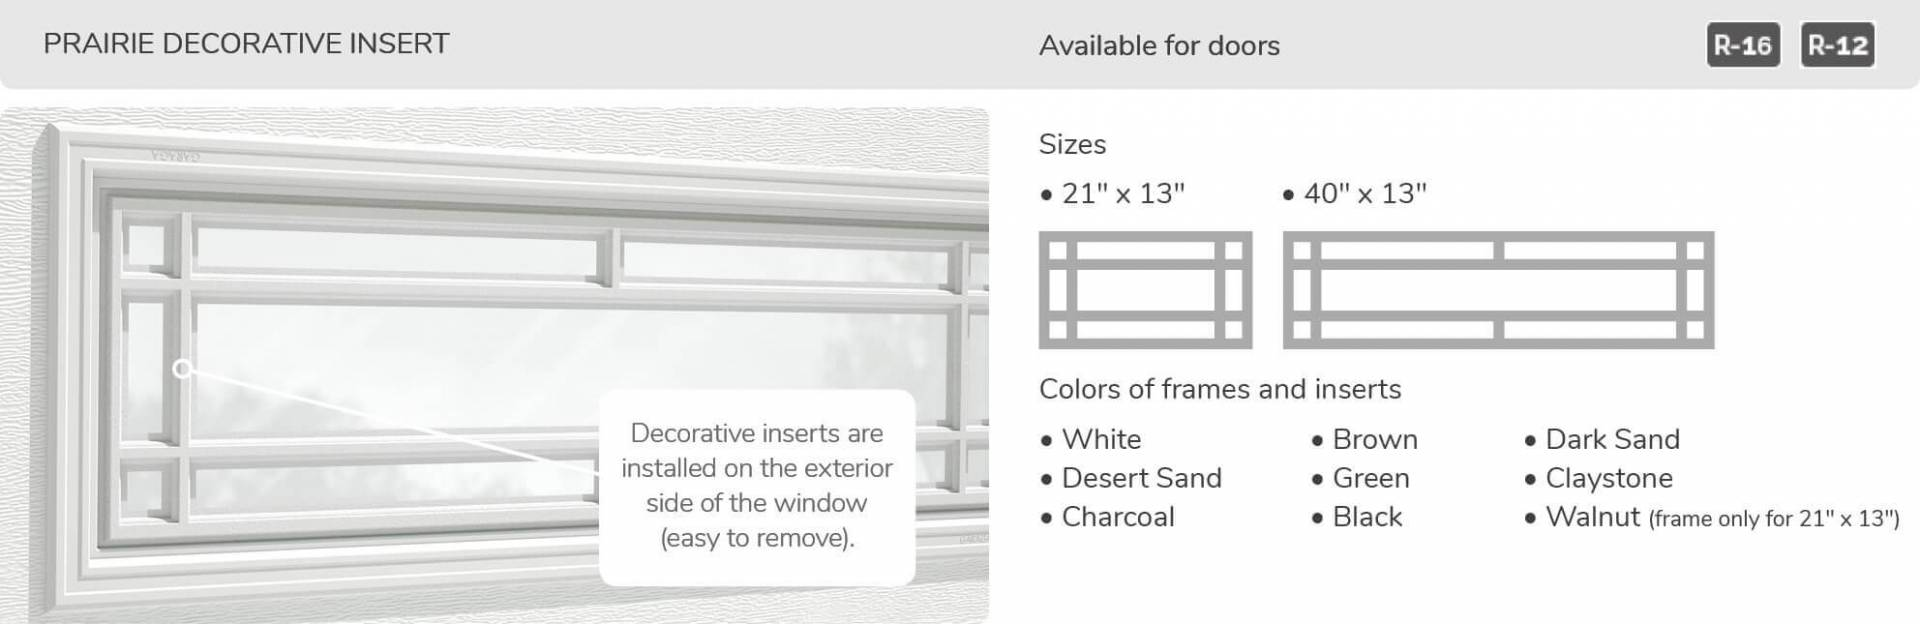 Prairie Decorative Insert, 21' x 13' and 40' x 13', available for doors R-16 and R-12